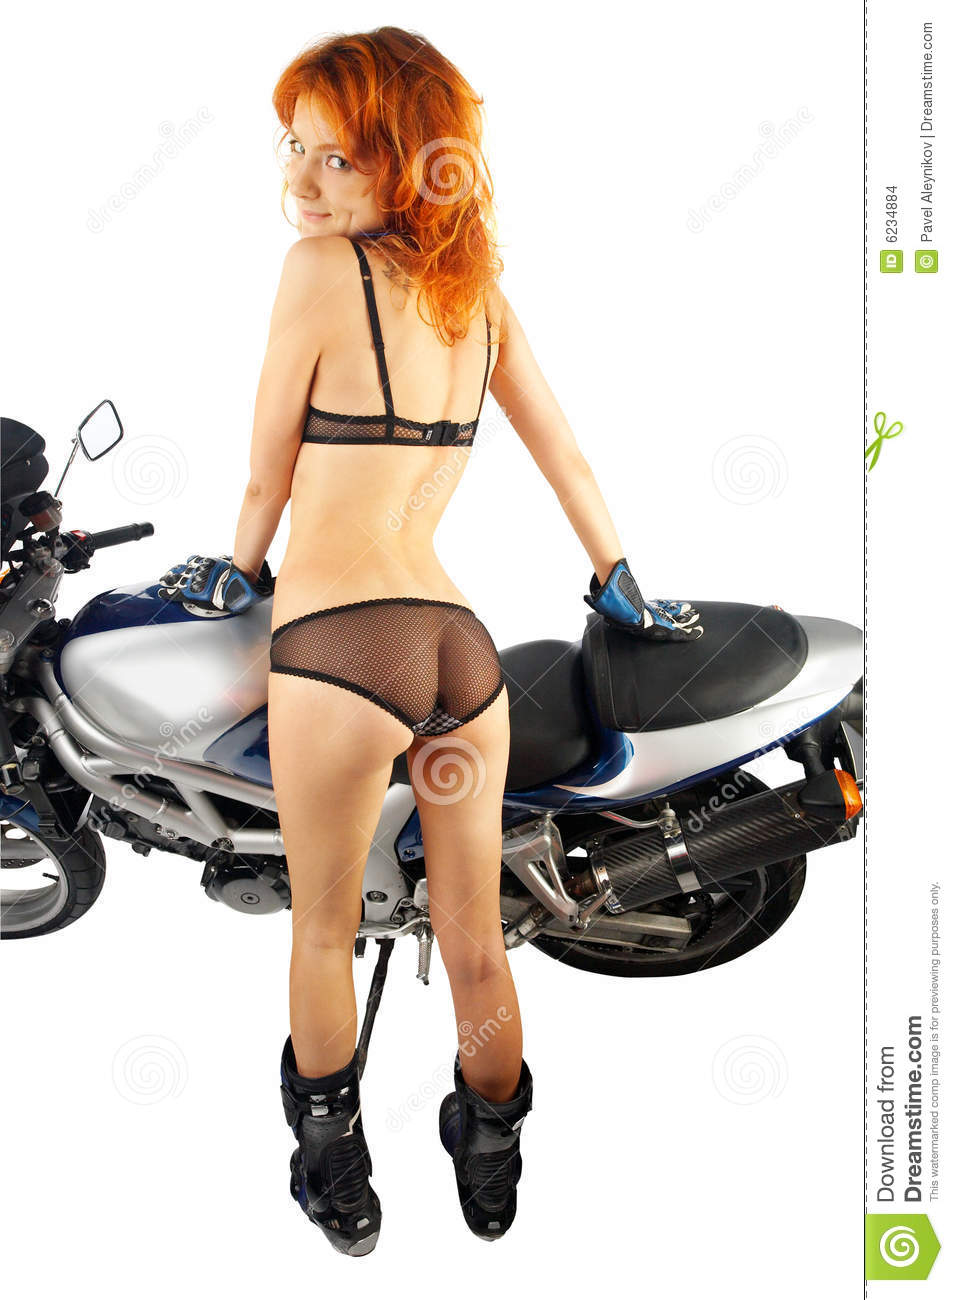 Biker Girl Wallpaper Free Download Girl With Motorcycle Equipment Stock Images Image 6234884